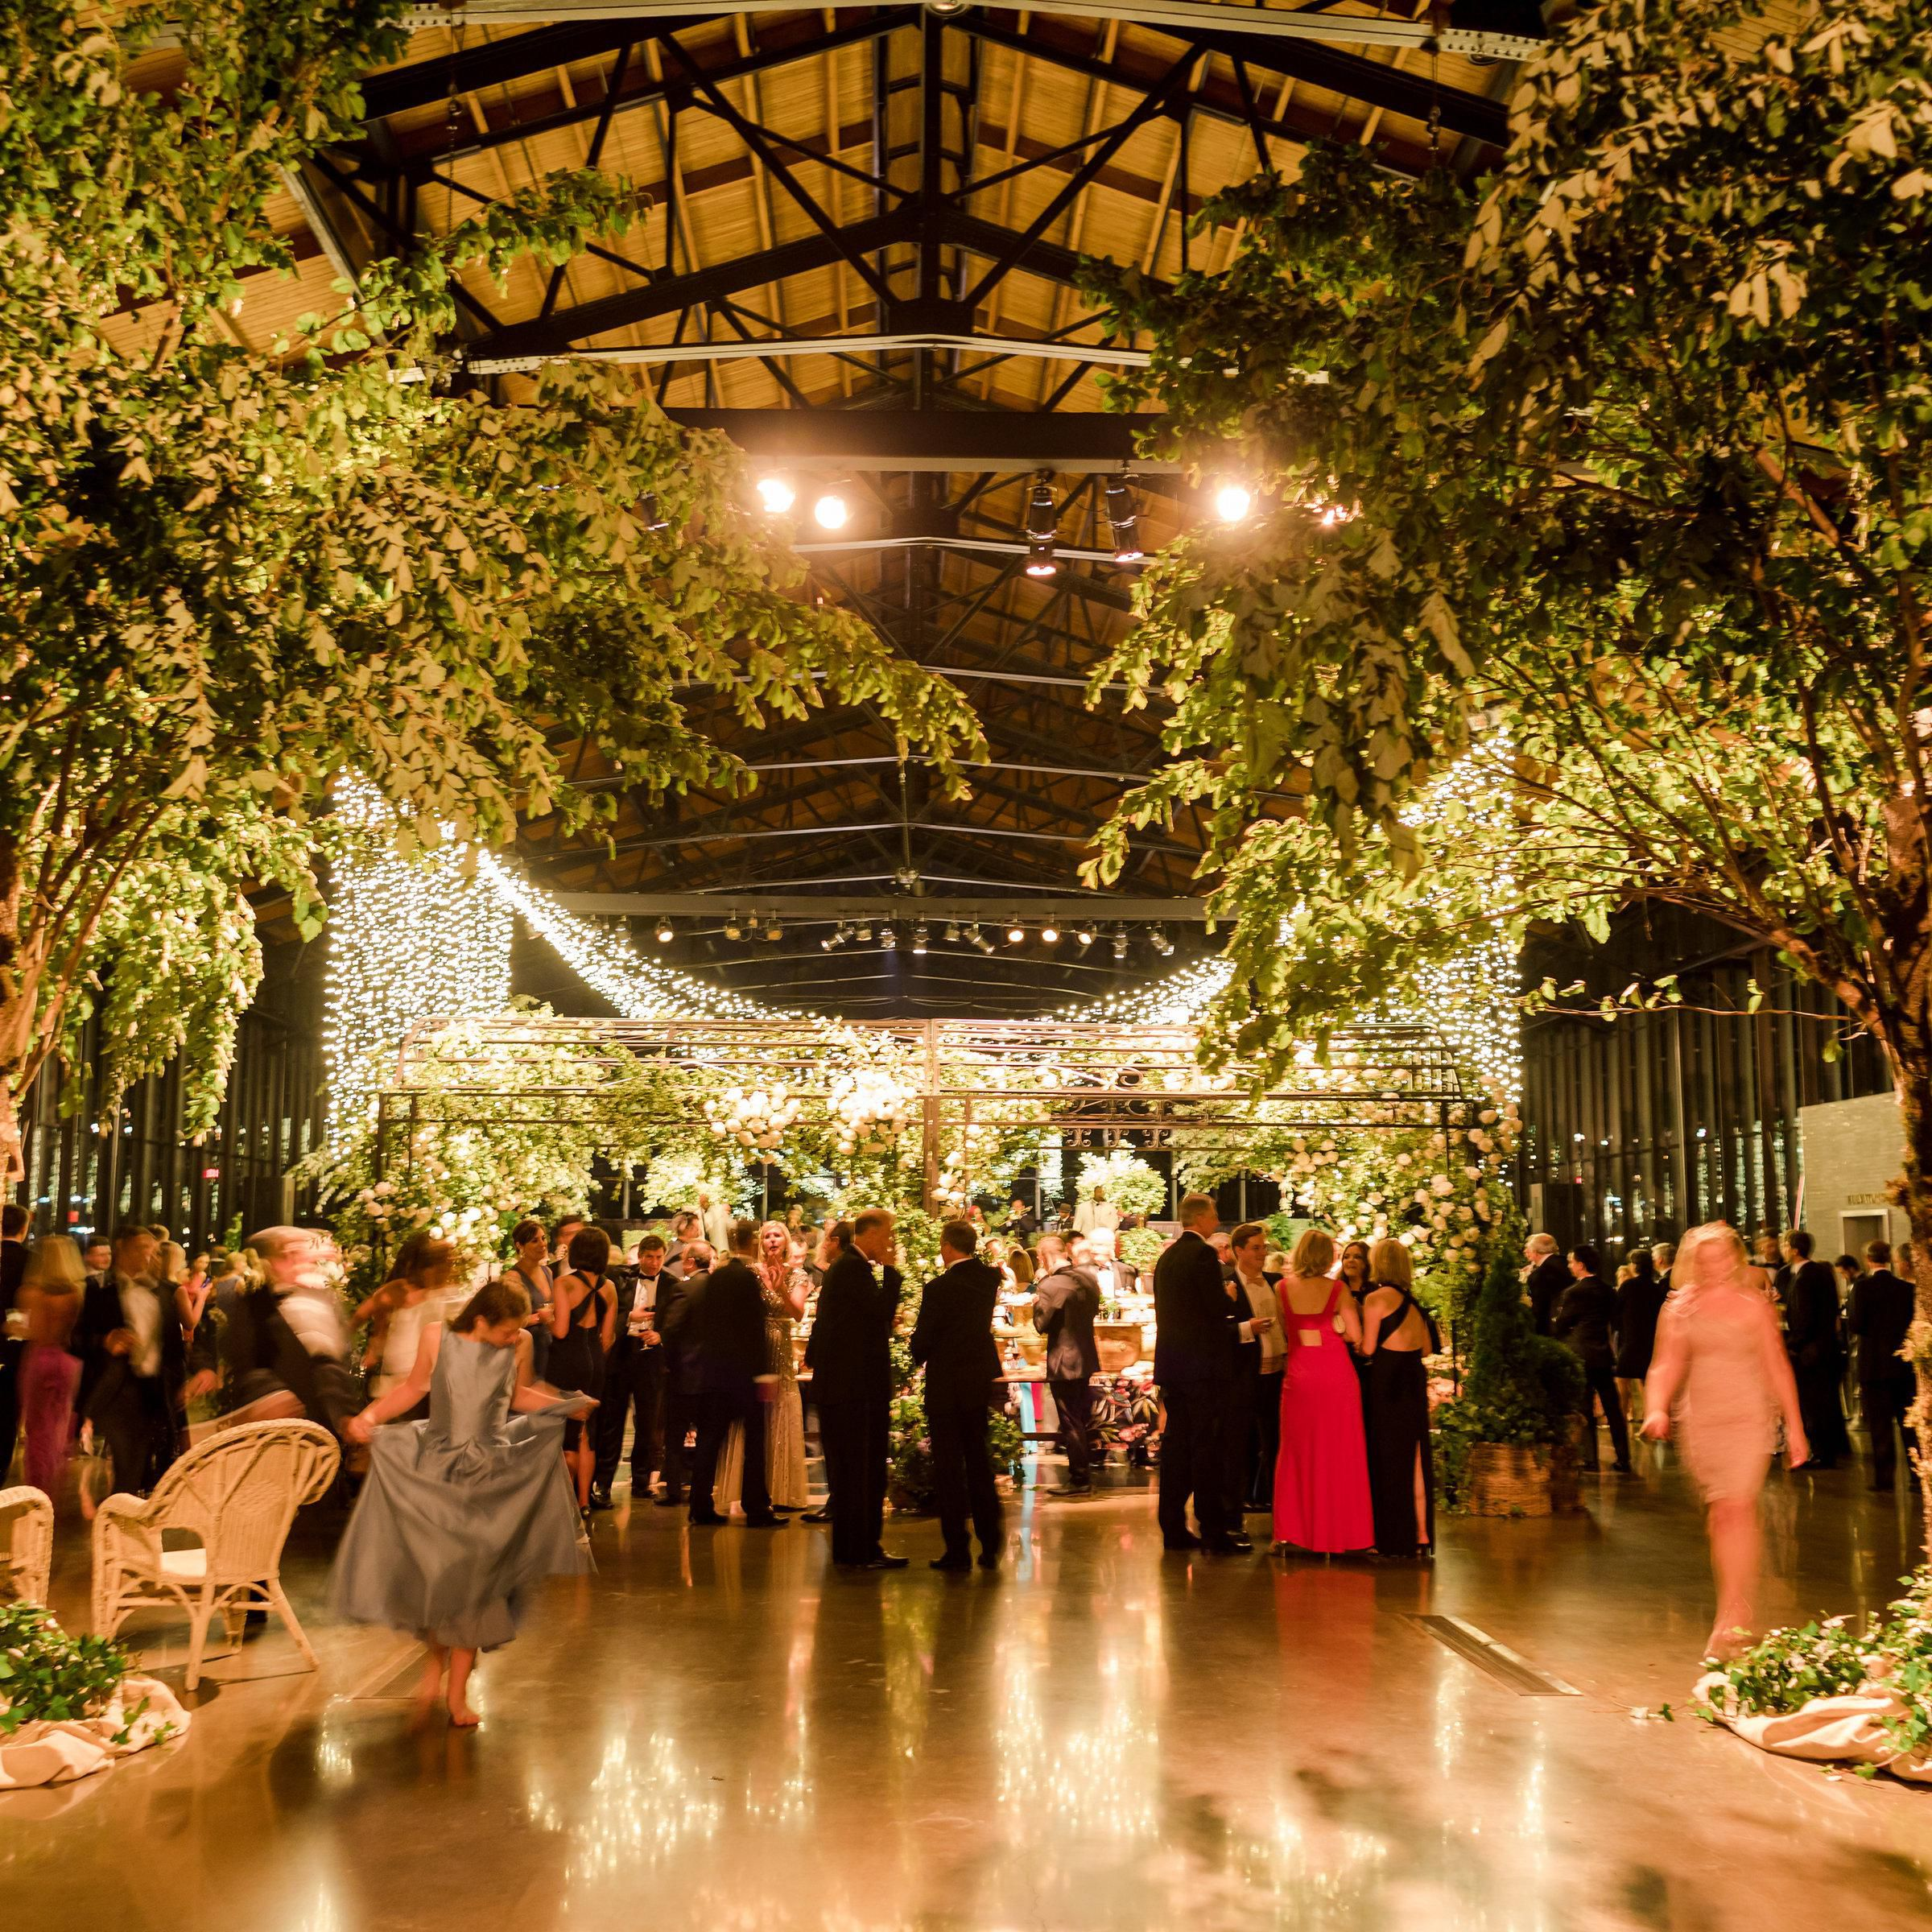 15 Of The Most Unique Wedding Venues Out There